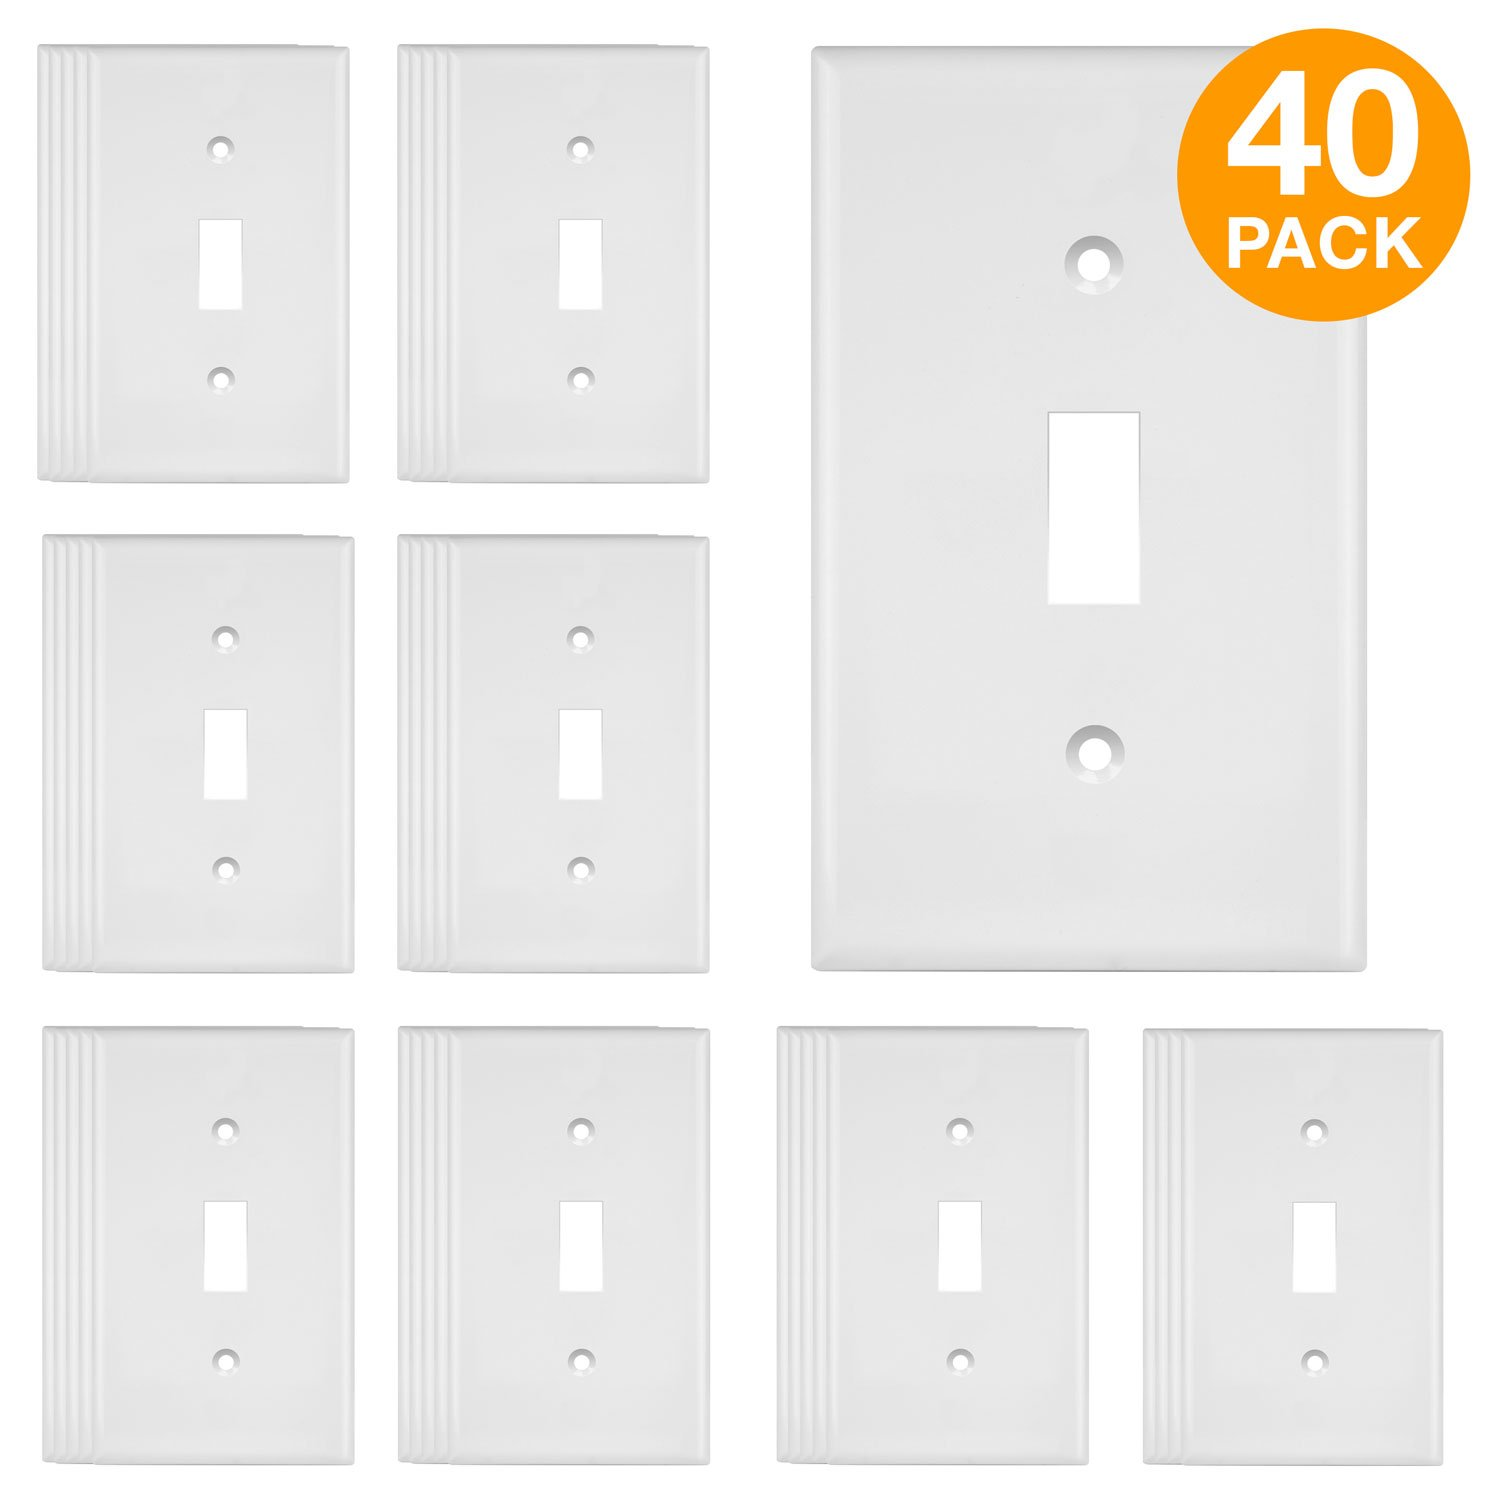 ENERLITES Toggle Light Switch Wall Plate, Size 1-Gang 4.50'' x 2.76'', Unbreakable Polycarbonate Thermoplastic, 8811-W-40PCS, White (40 Pack)